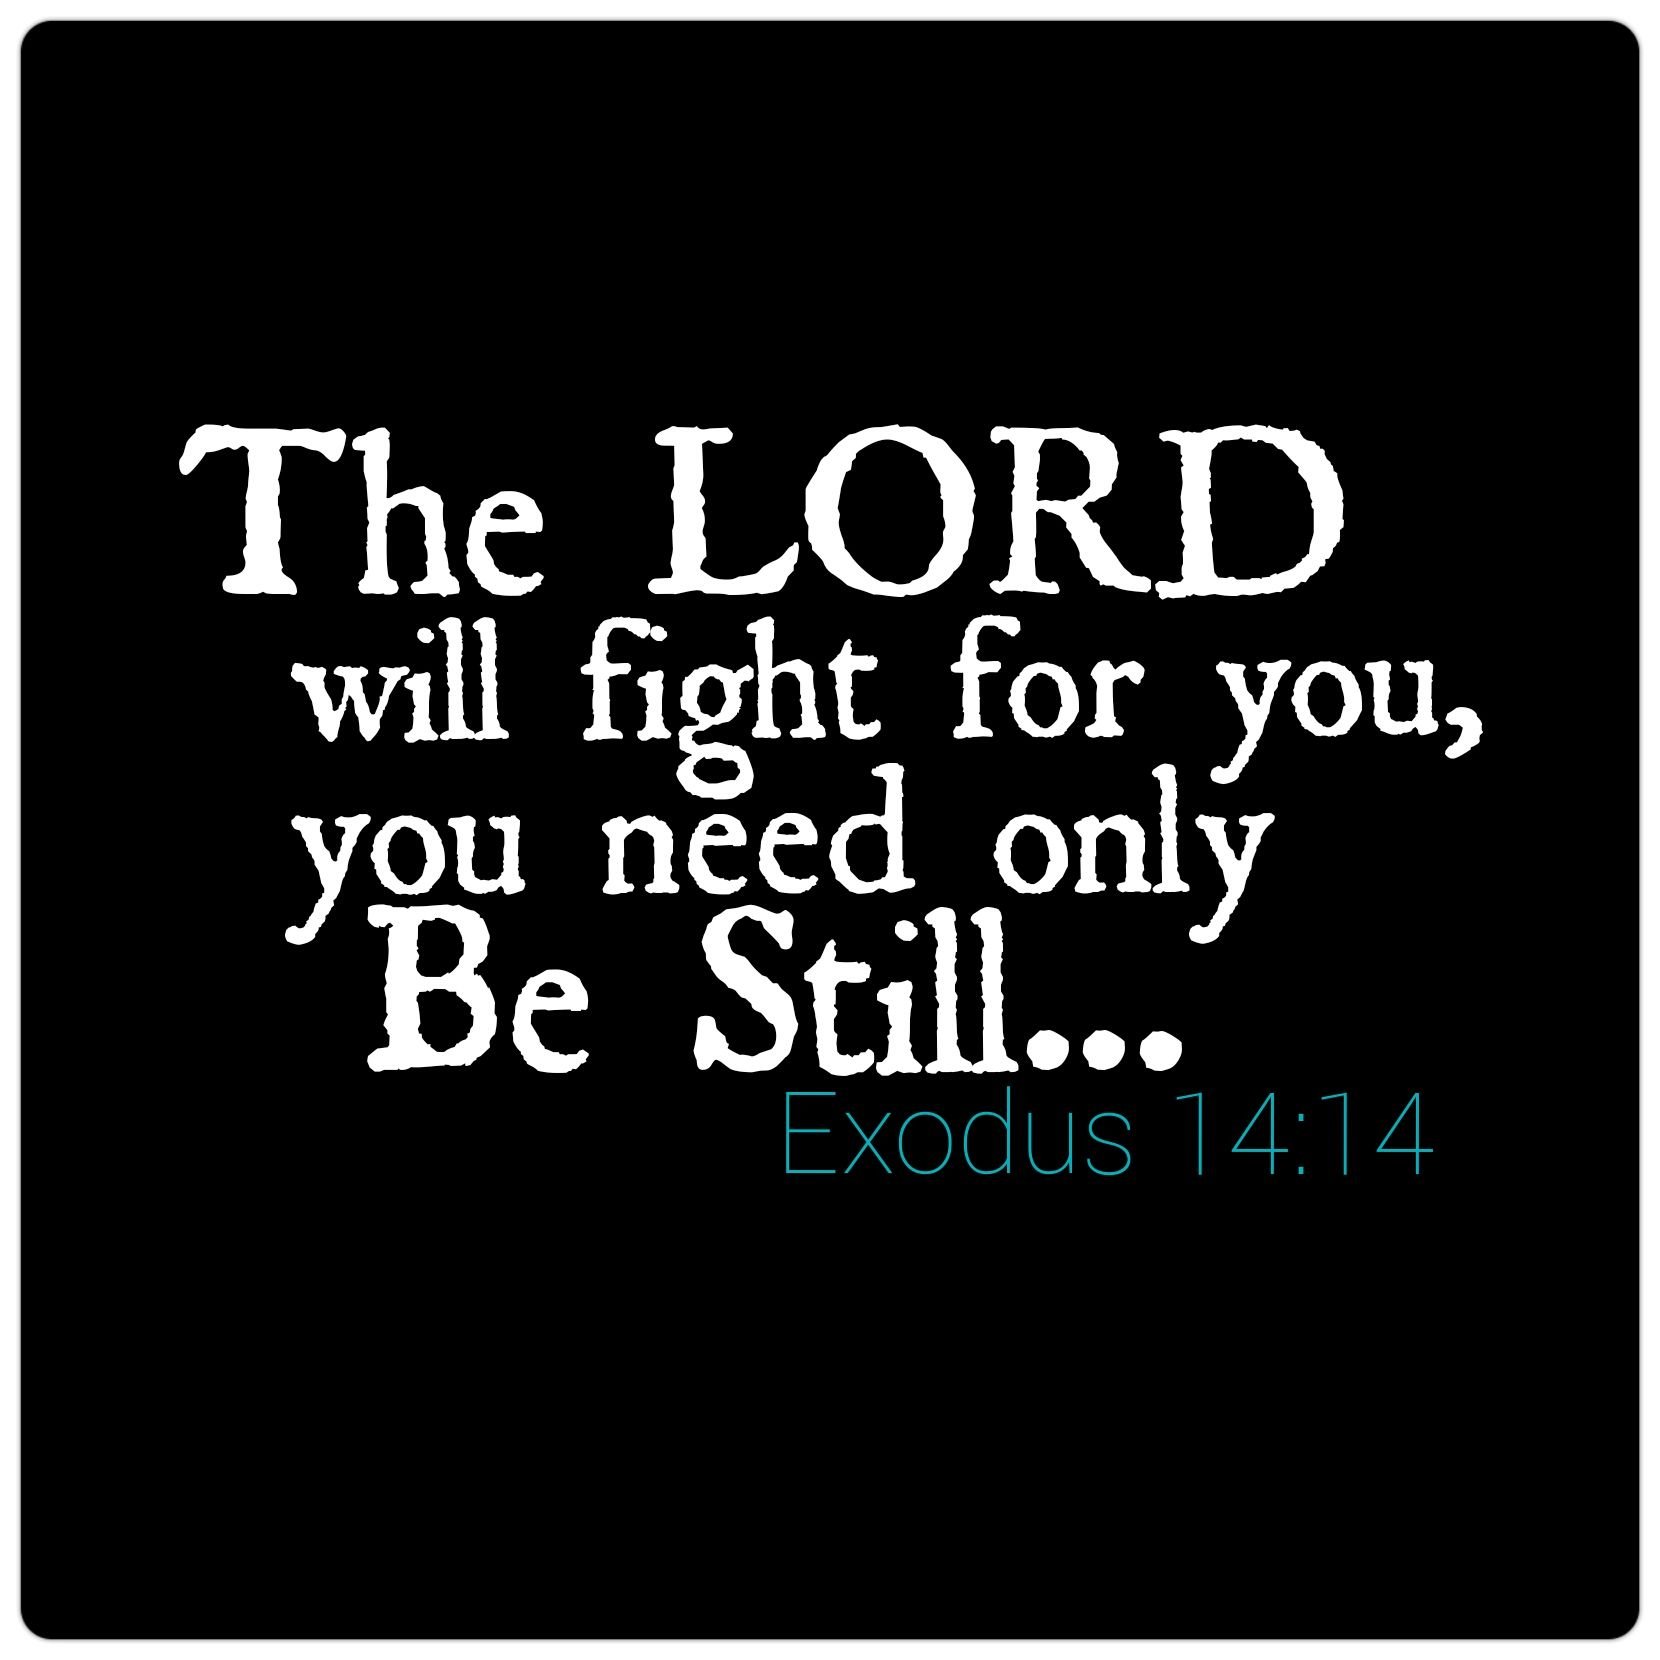 Let God fight for you